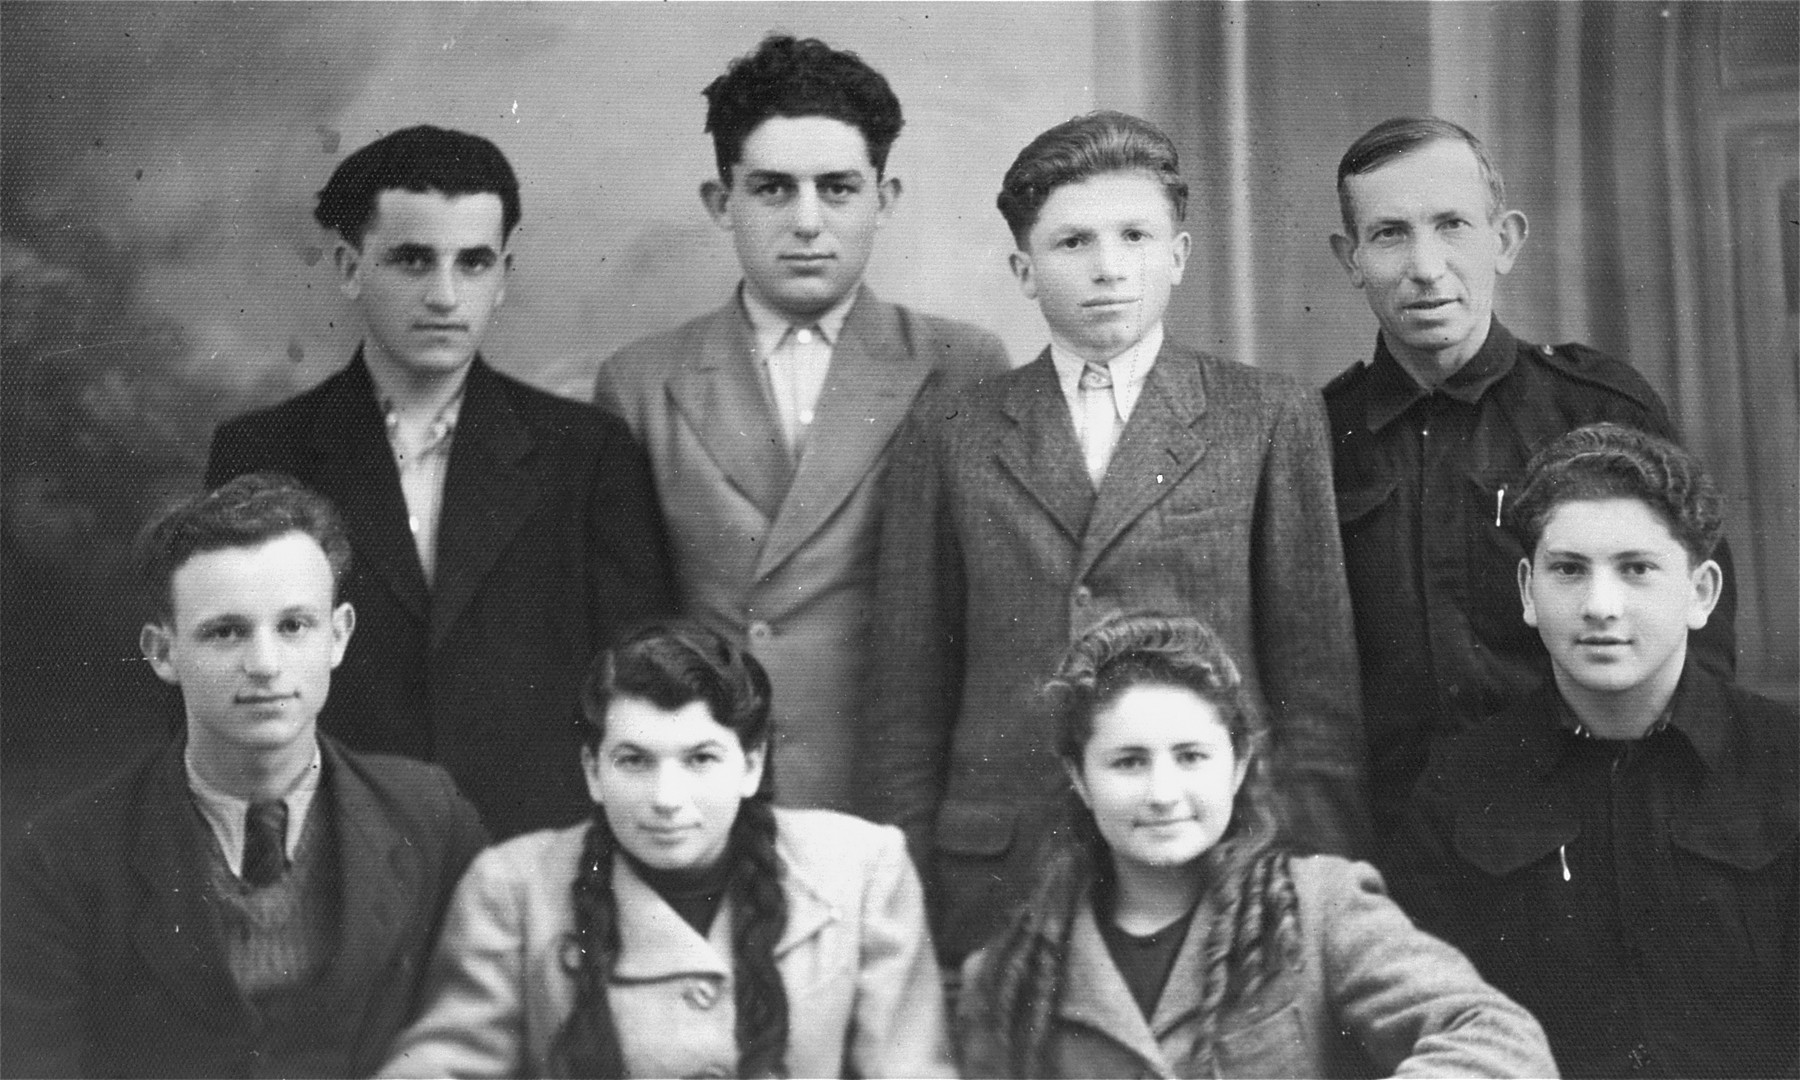 Group portrait of Jewish DP youth in Kolbuszowa.  Among those pictured is Manius Notowicz (front row, right) and Markus Rohtbart (top row, right).